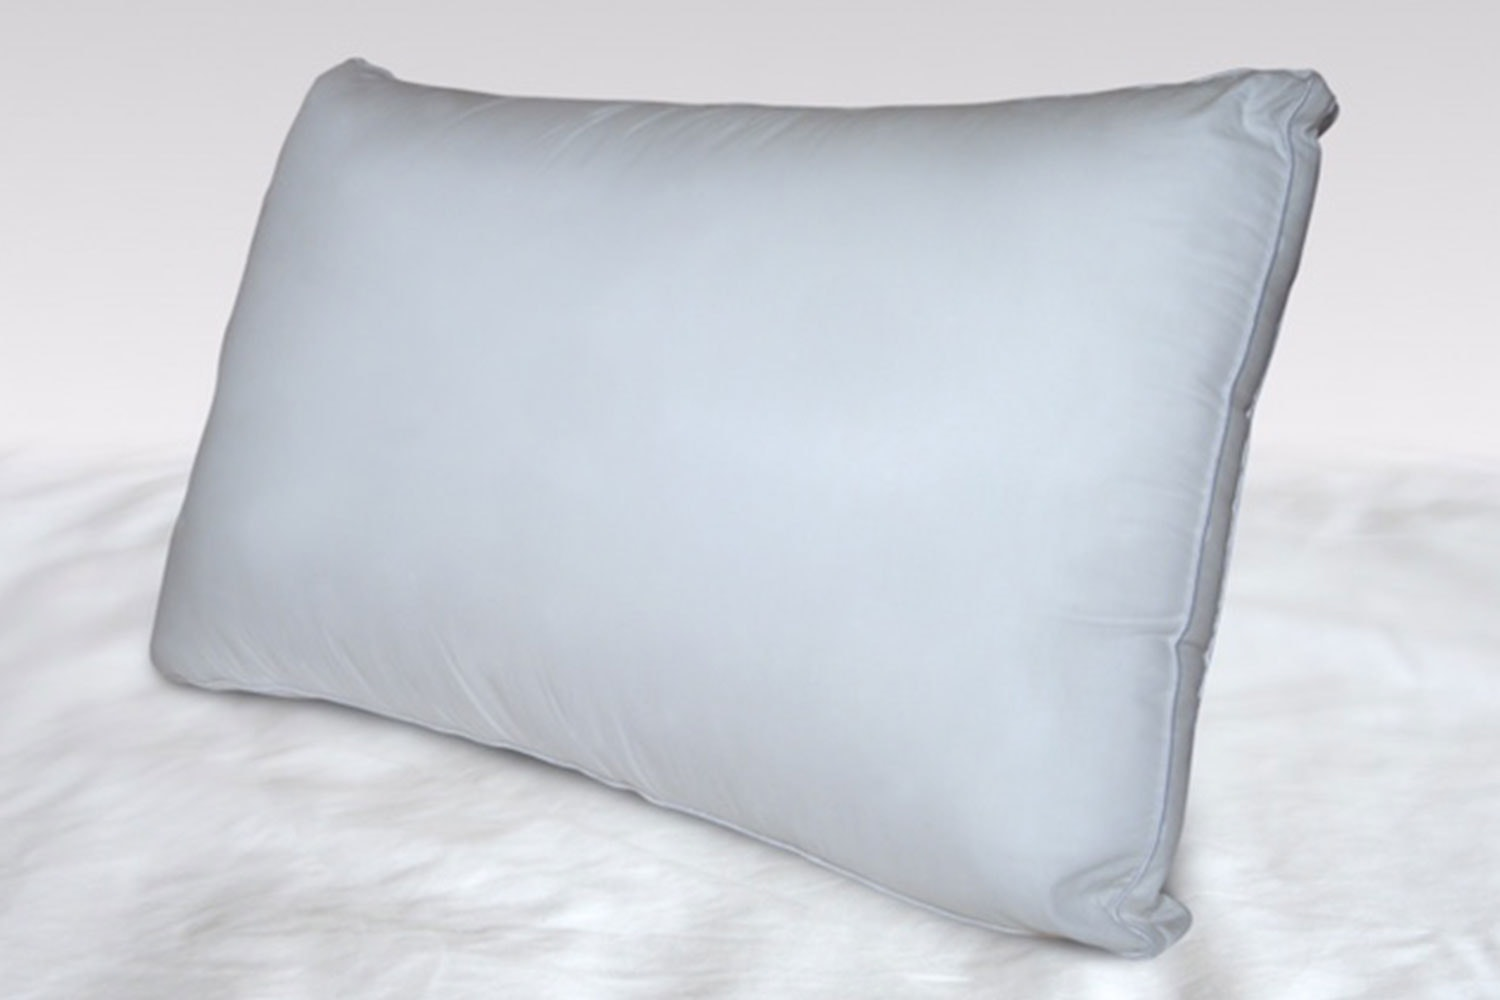 High and Soft Gusseted Pillow by Herington